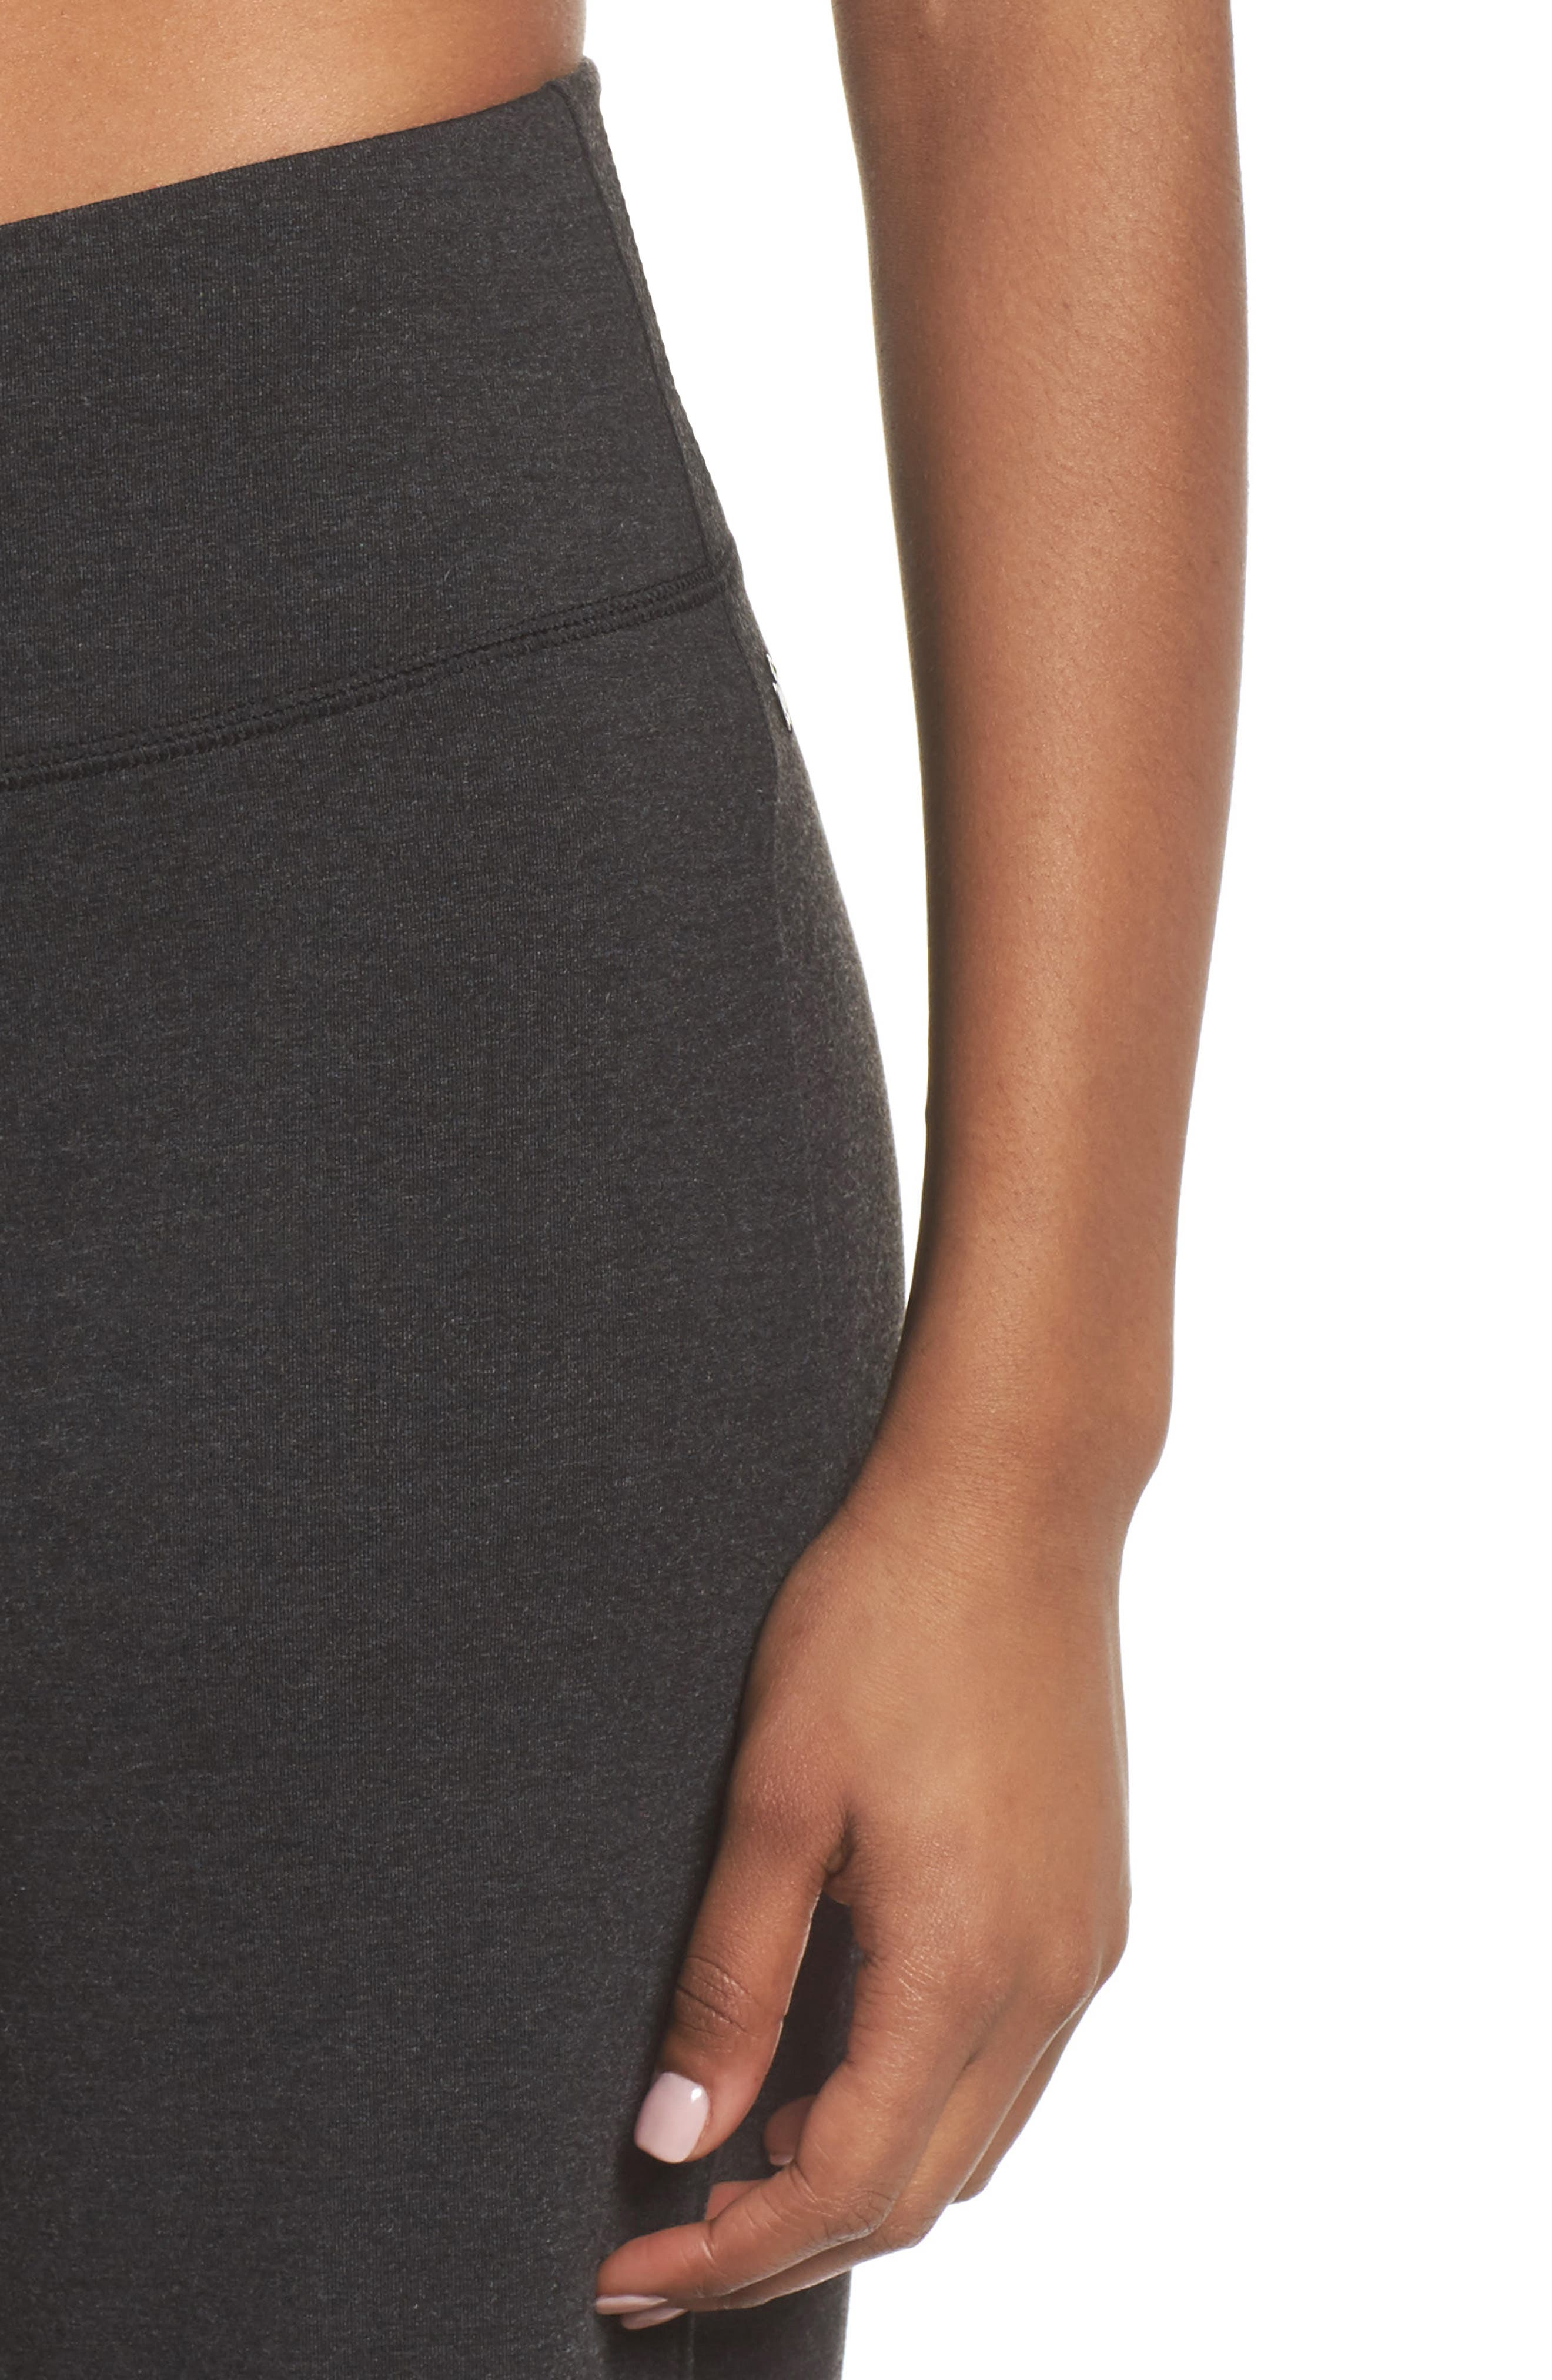 Go With The Flow Pants,                             Alternate thumbnail 4, color,                             GREY DARK CHARCOAL HEATHER